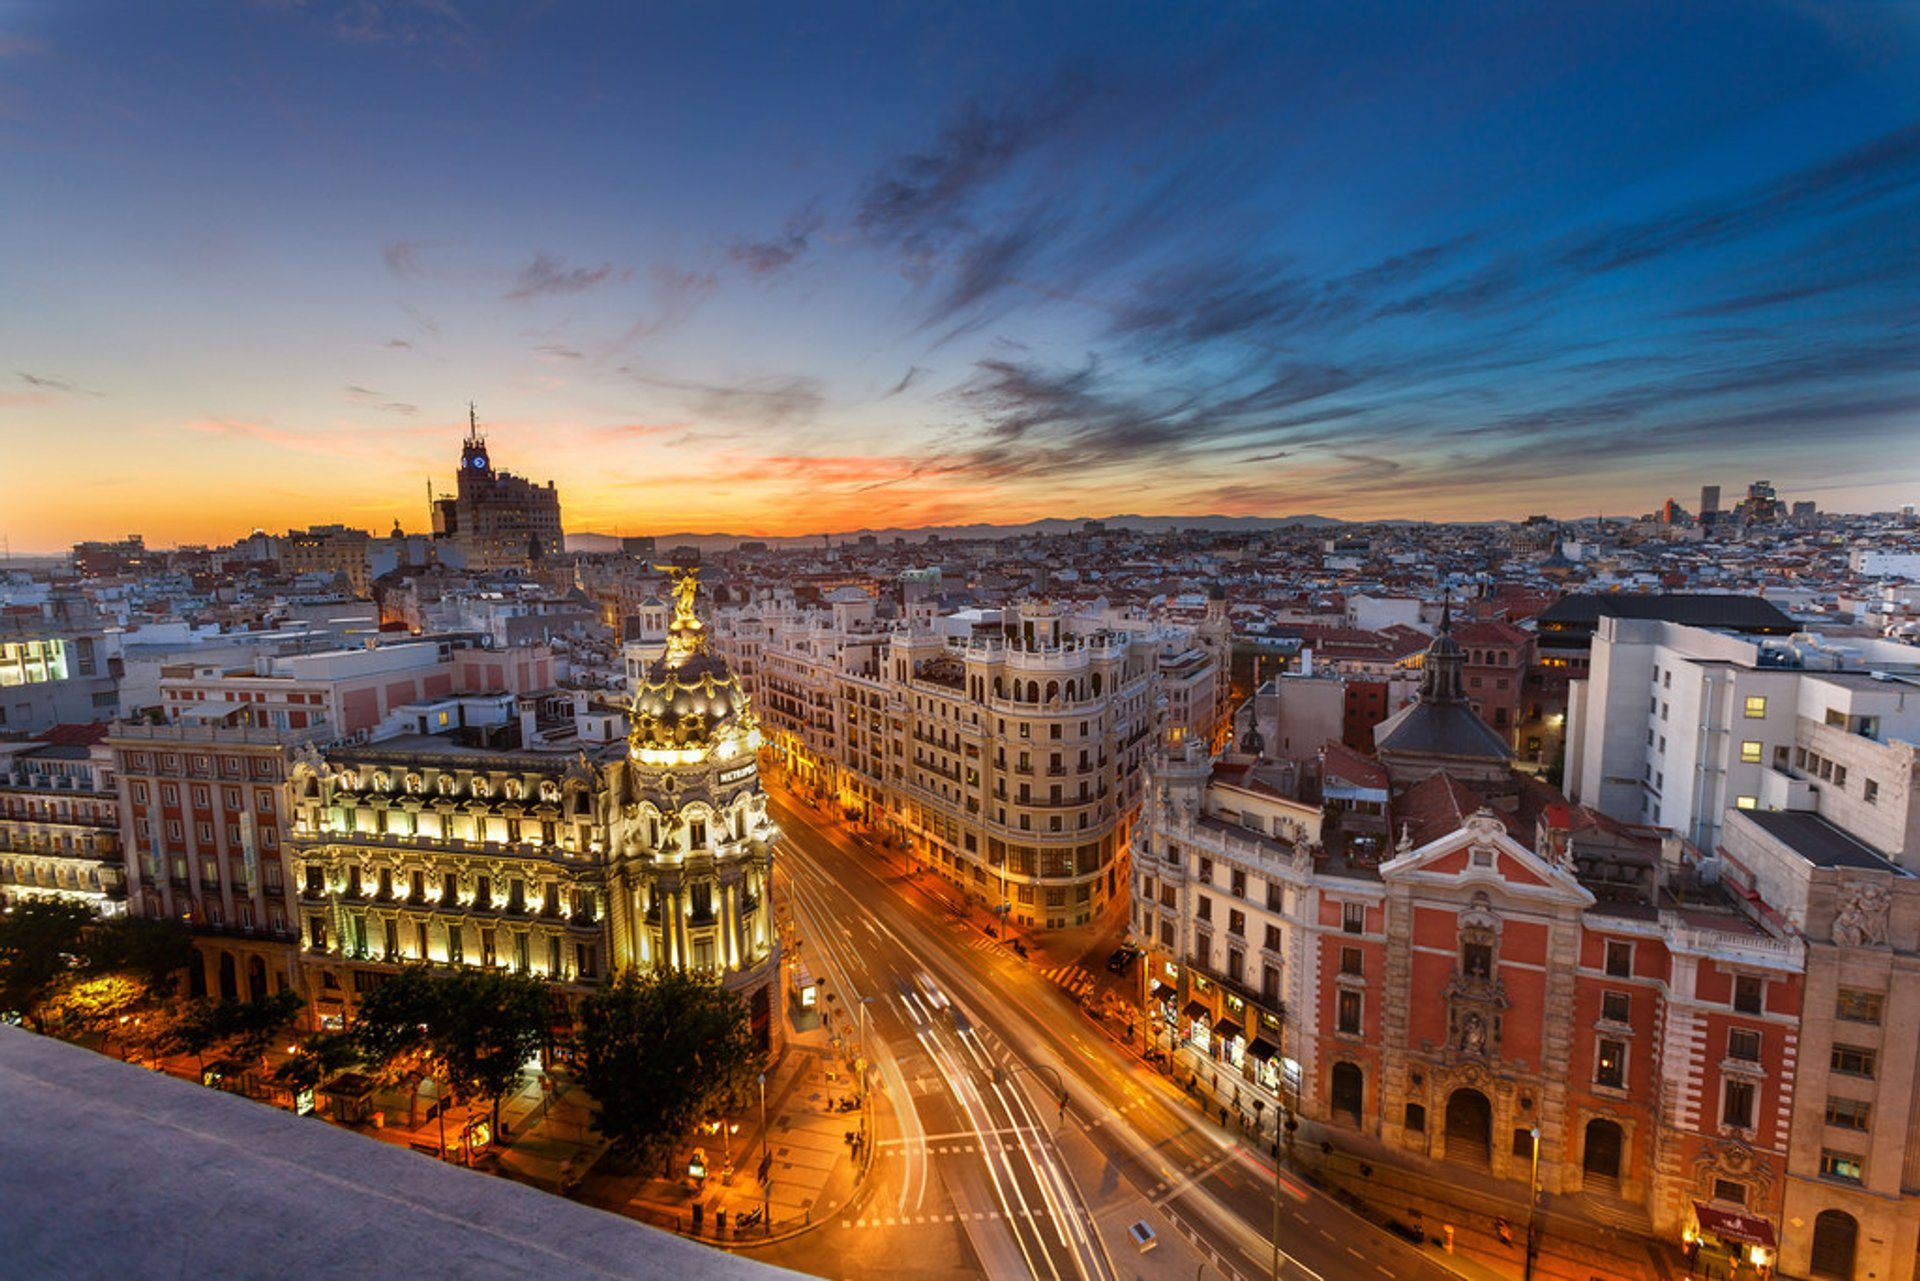 Rooftop Terraces at Sunset in Madrid 2020 - Best Time